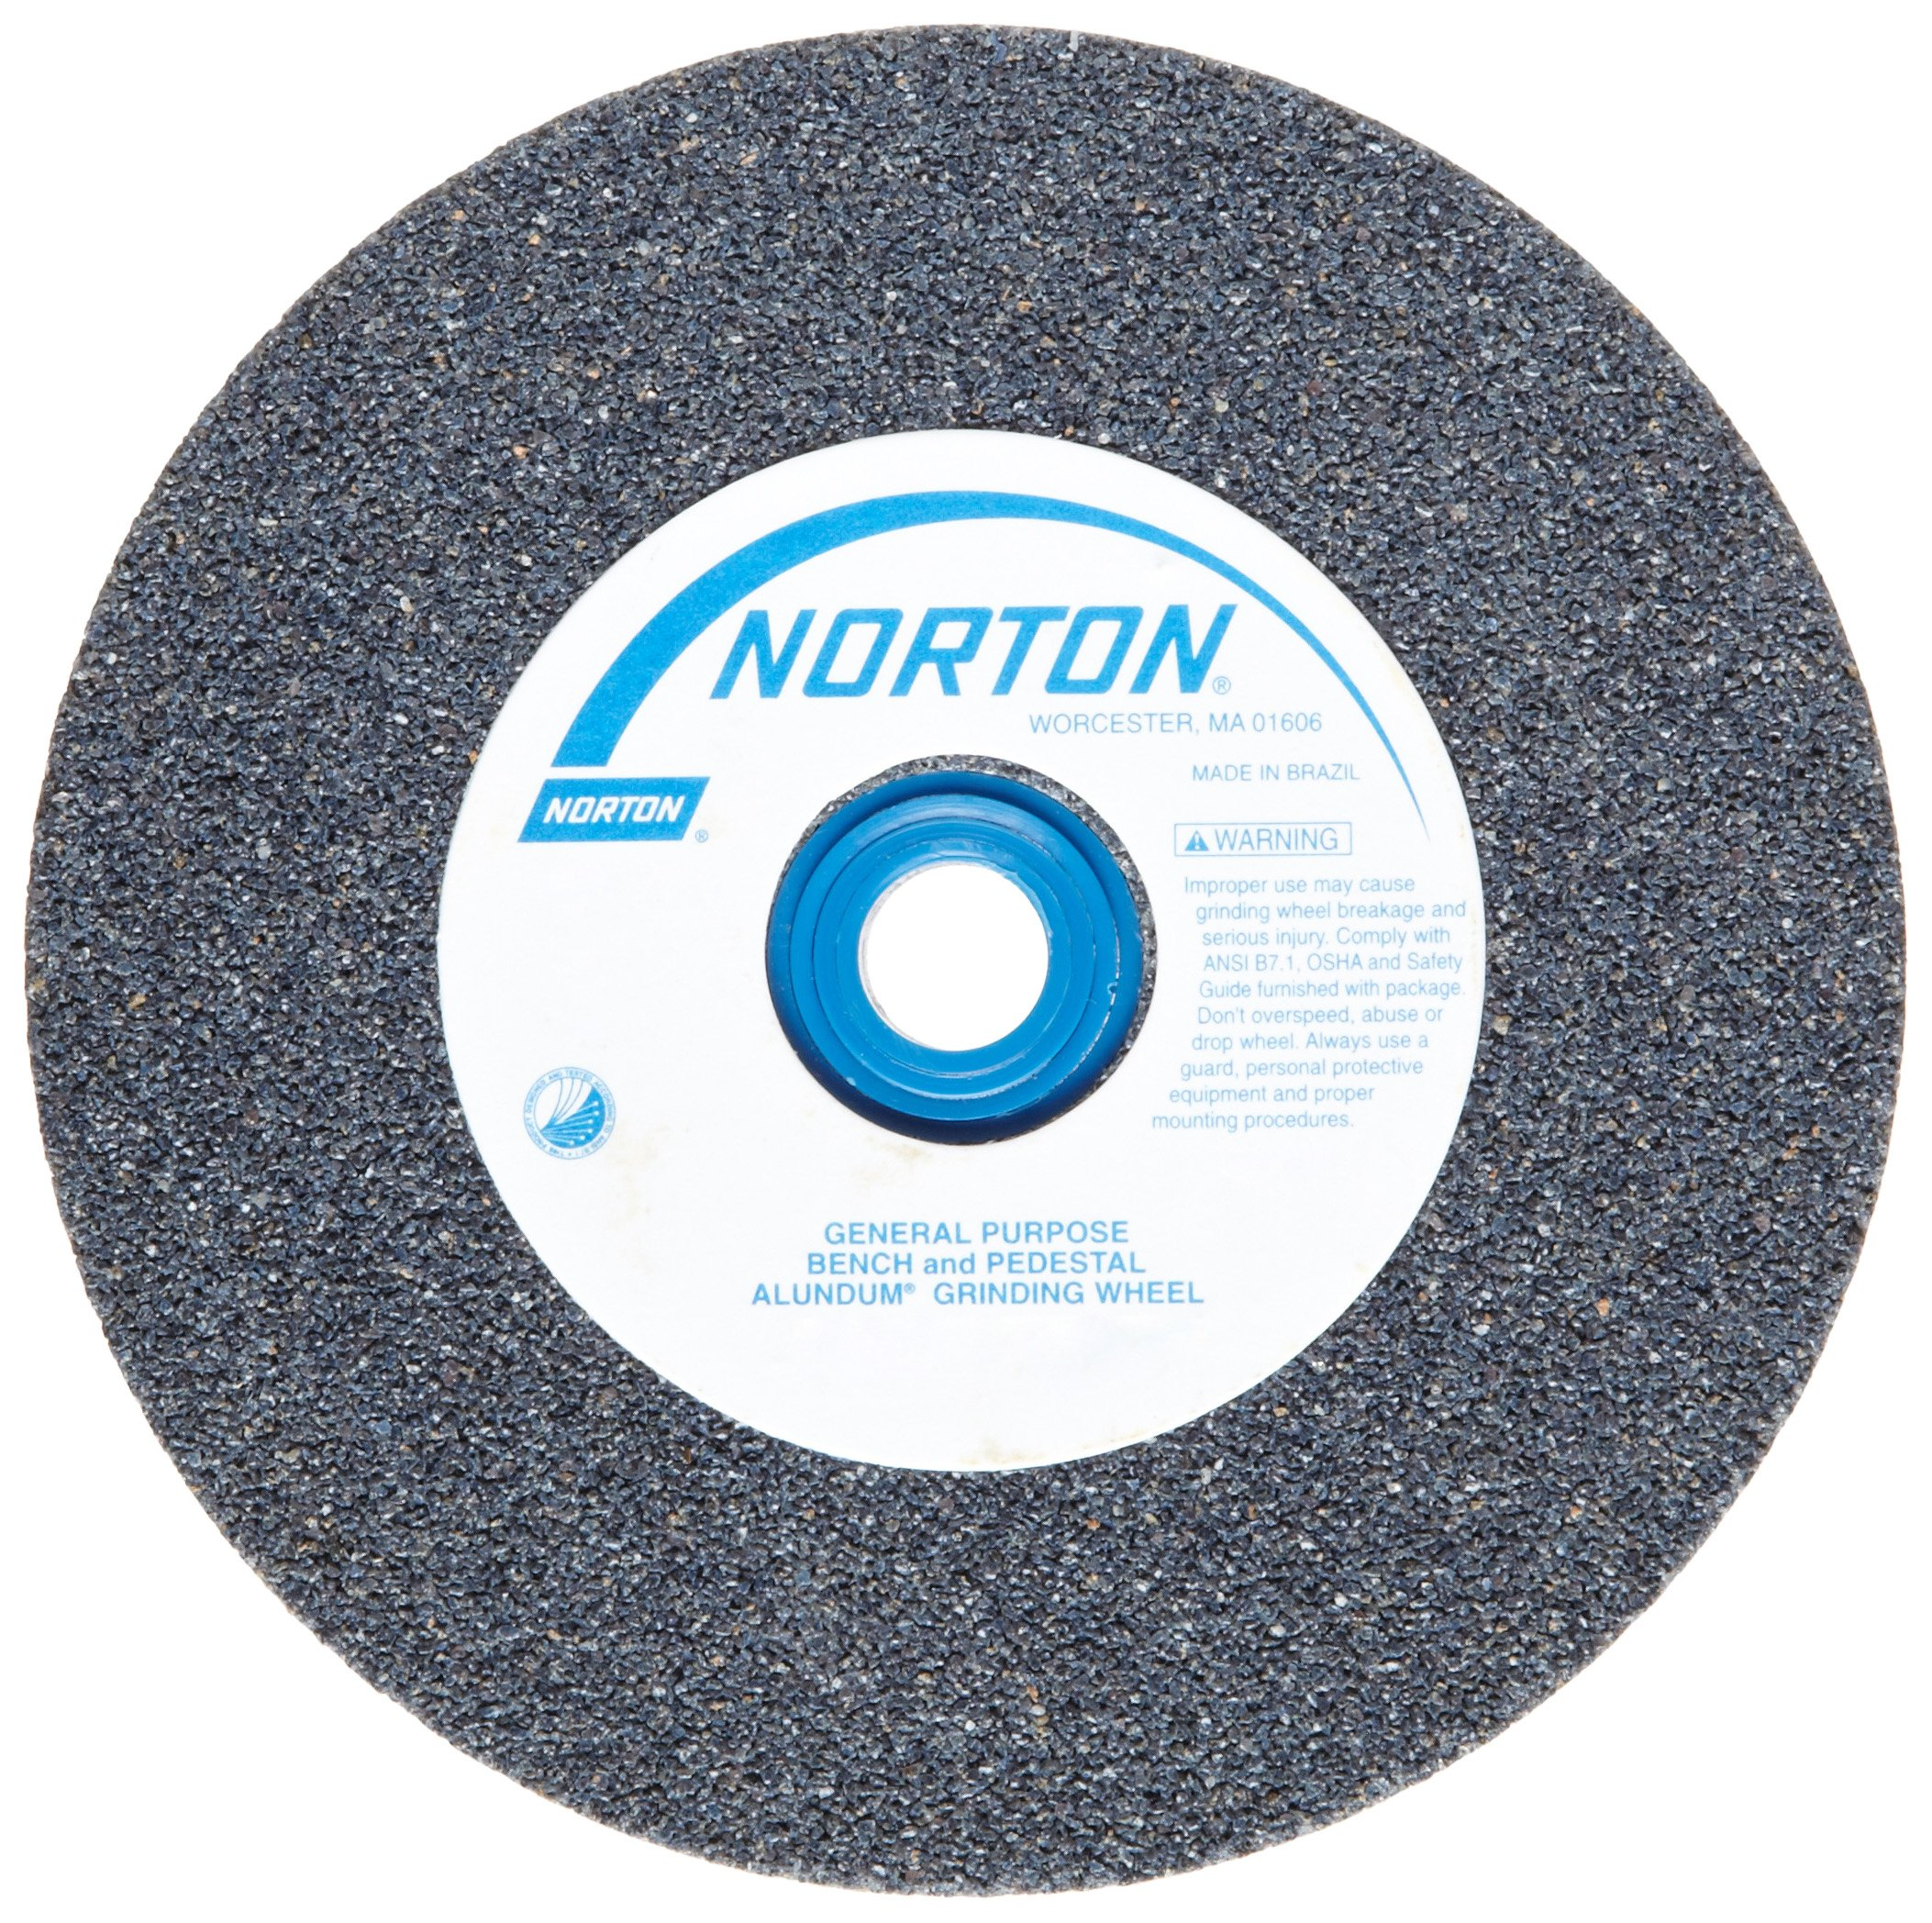 Norton Gemini Bench and Pedestal Abrasive Wheel, Type 01 Straight, Aluminum Oxide, 1'' Arbor, 8'' Diameter, 1'' Thickness, 24 Grit (Pack of 1)